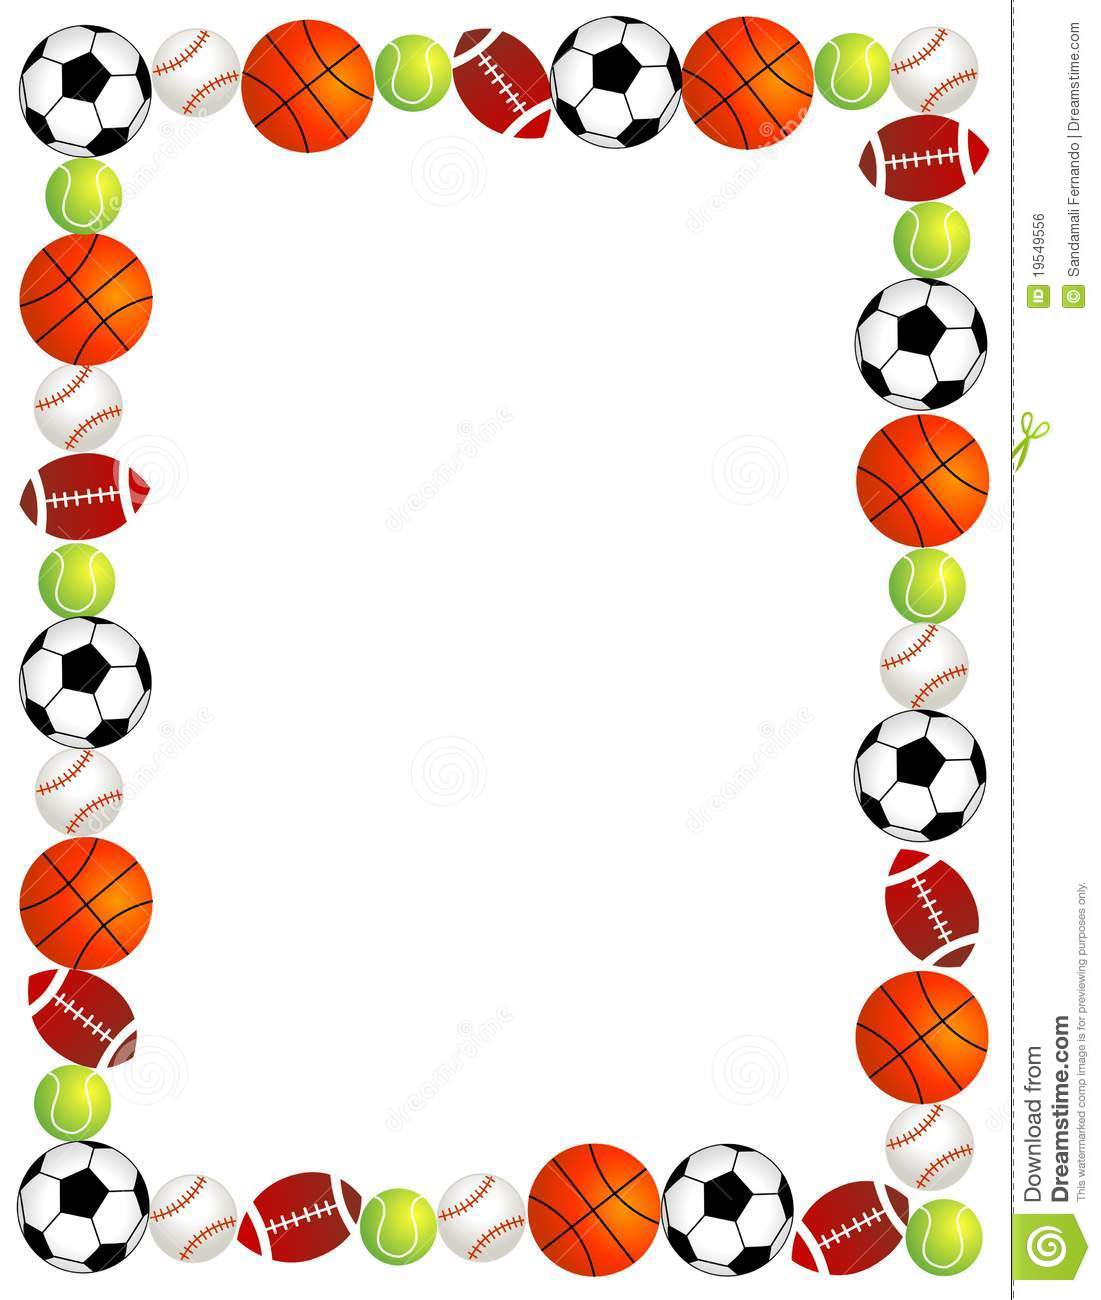 sports borders clipart panda free clipart images rh clipartpanda com sports border clip art free Sports Balls Clip Art